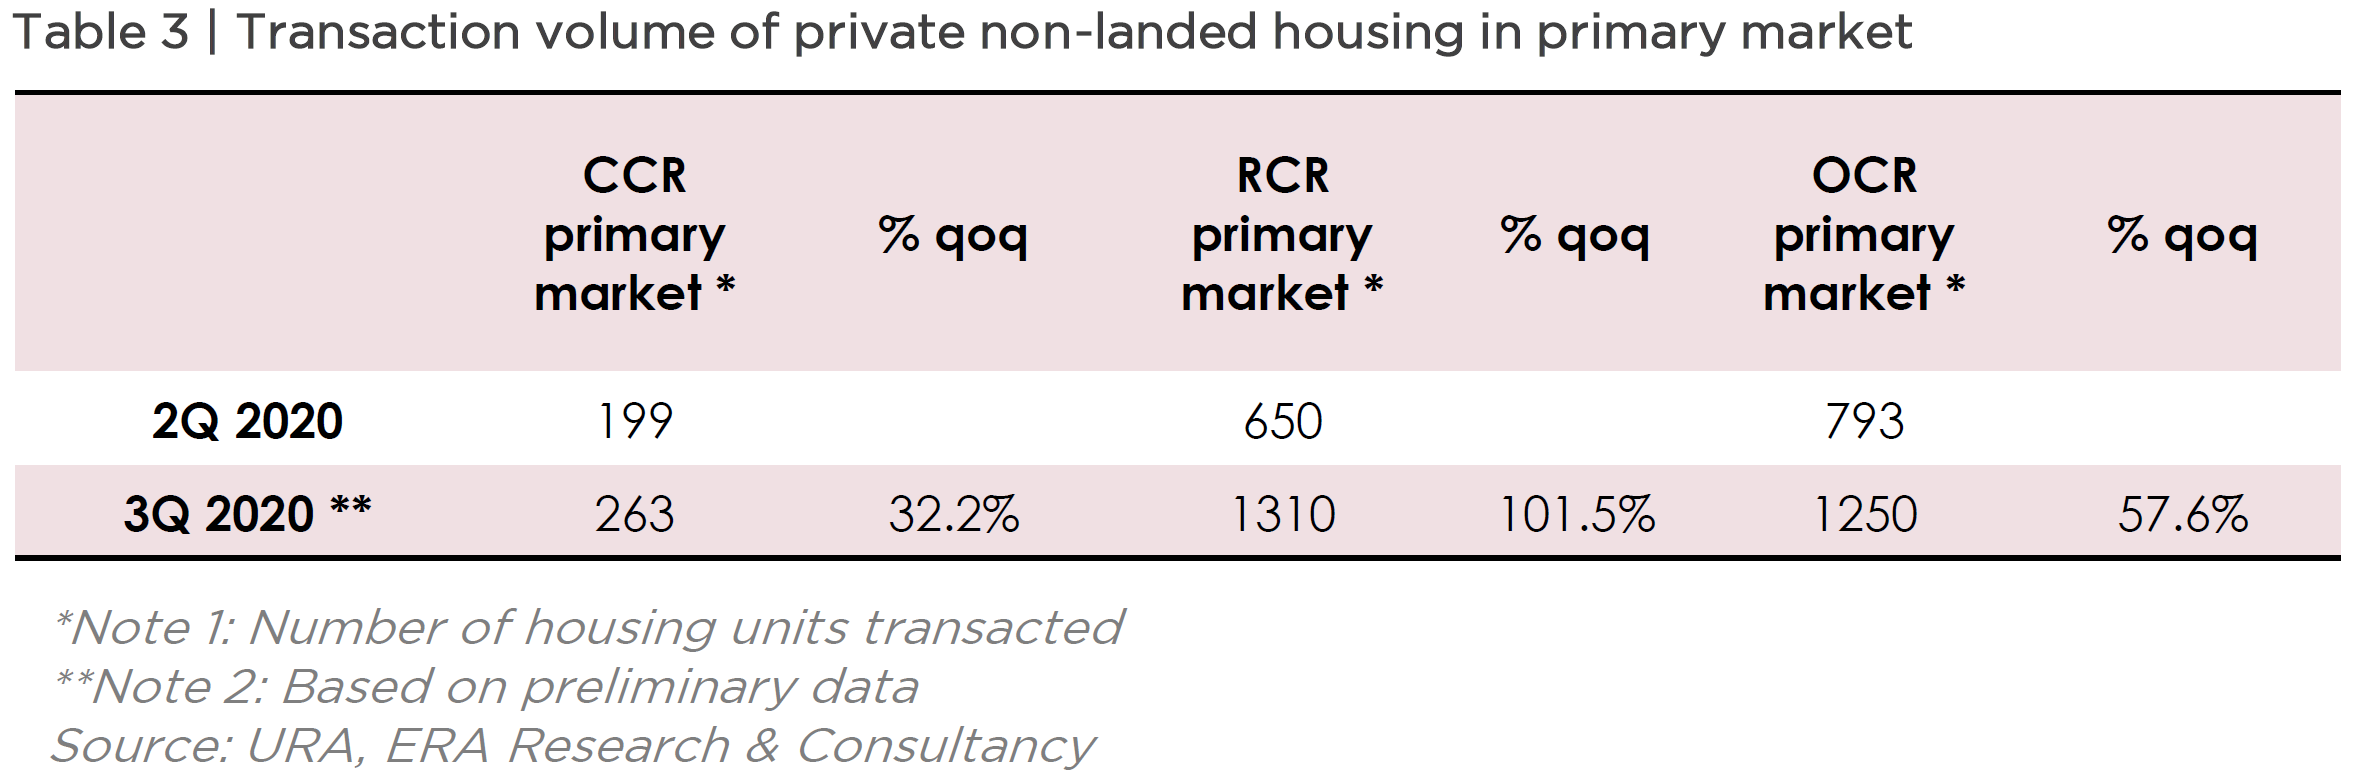 Transactin Volume of Private Non-Landed Housing in Primary Market